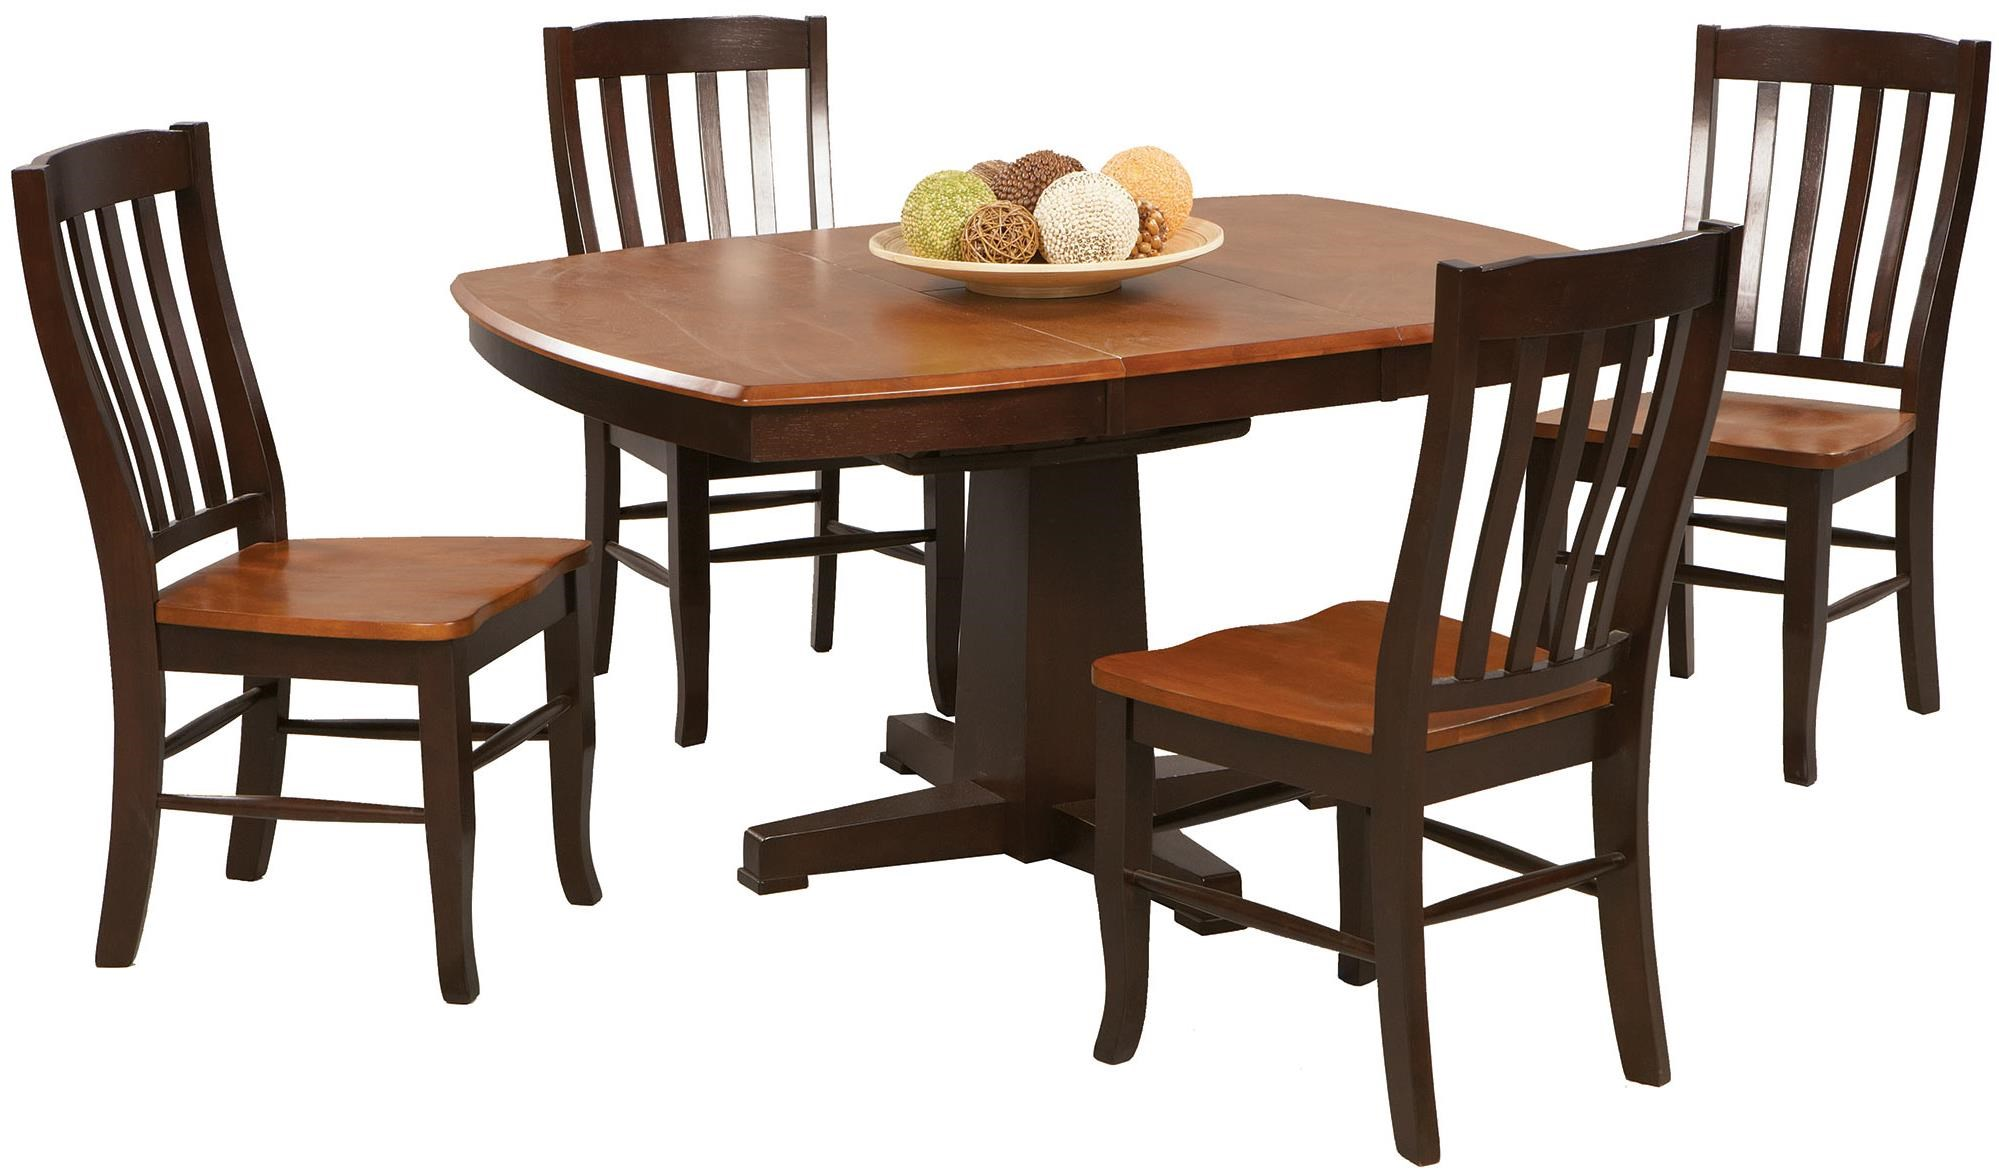 Santa Fe   Chestnut/Espresso 5 Piece Dining Set With Slat Back Chairs And  Butterfly Leaf By Winners Only